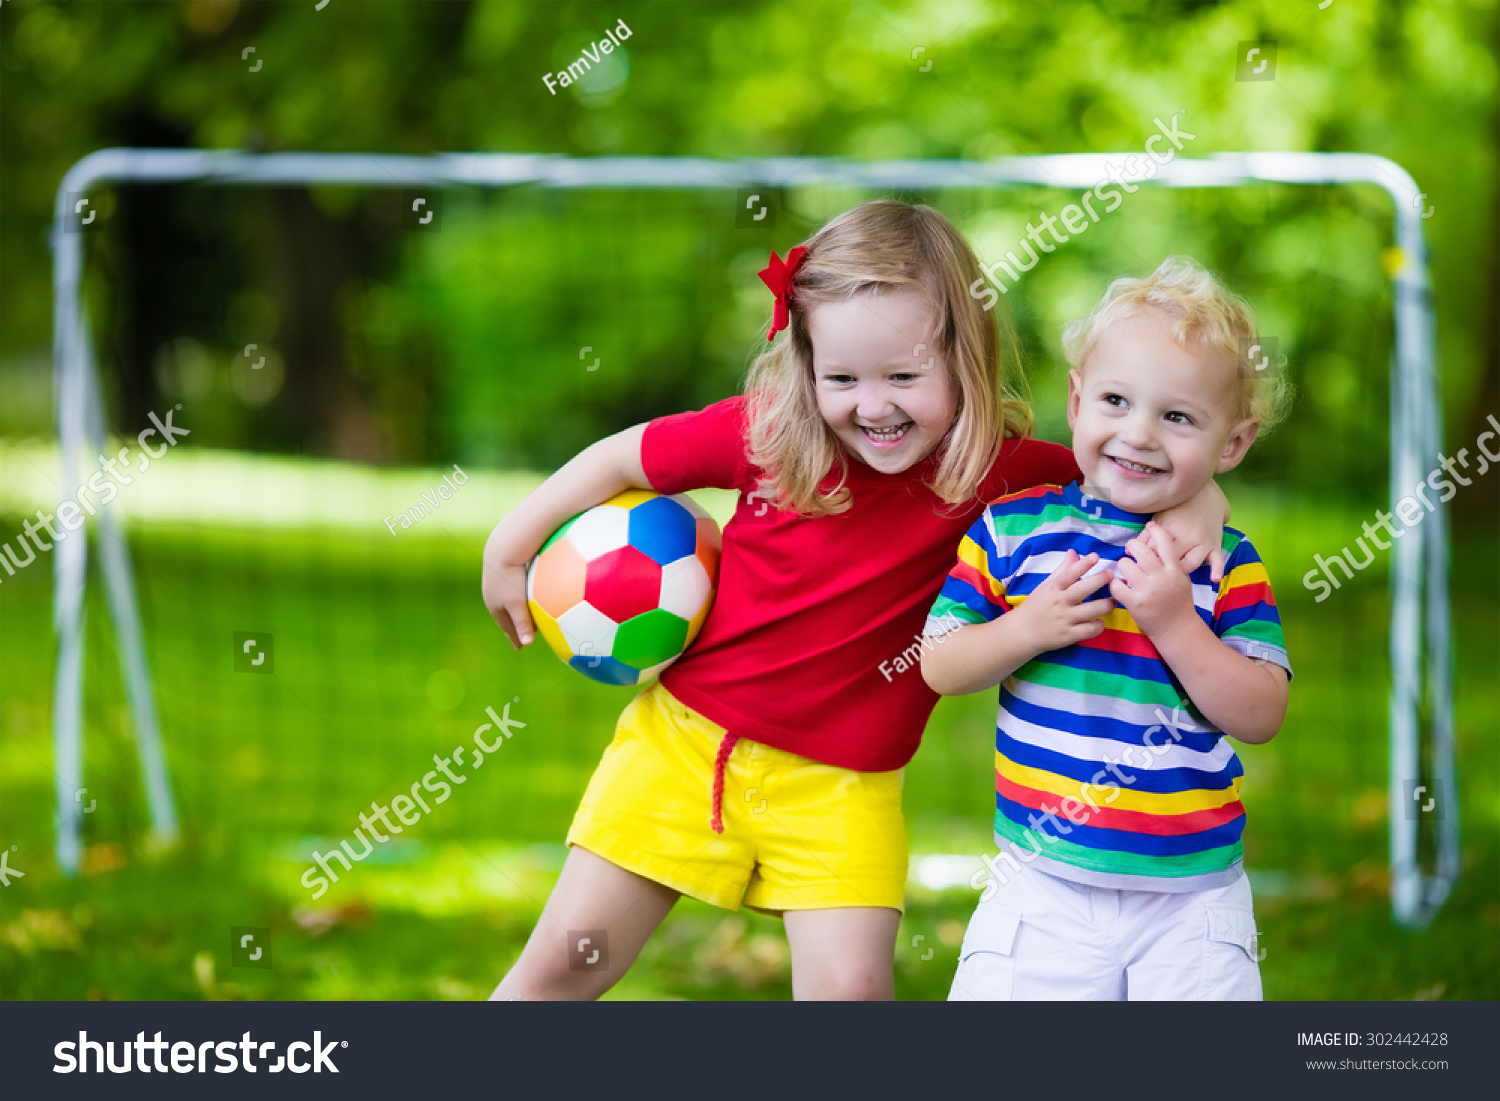 Children playing images for Childrens play yard